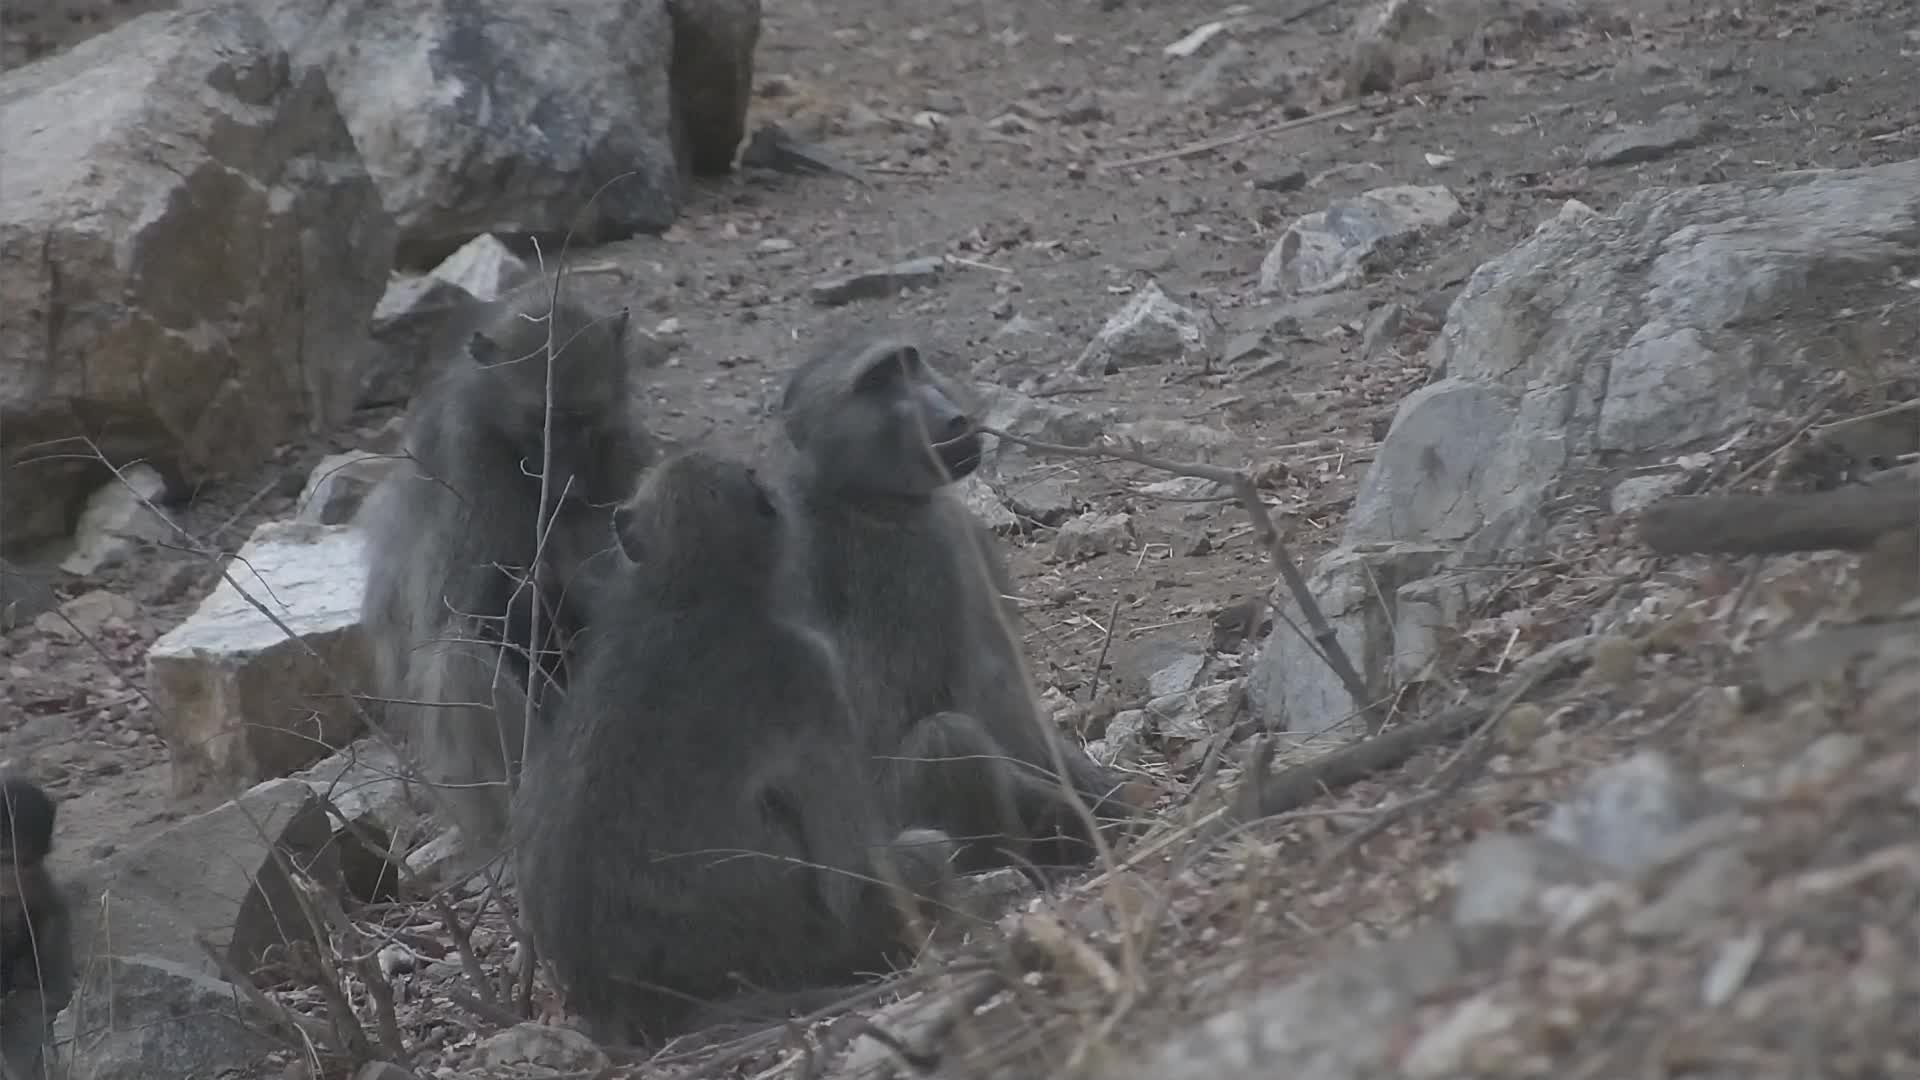 VIDEO: Baboons - adults are resting and the baby is very playful, climbs on the stone and jumps to the adults